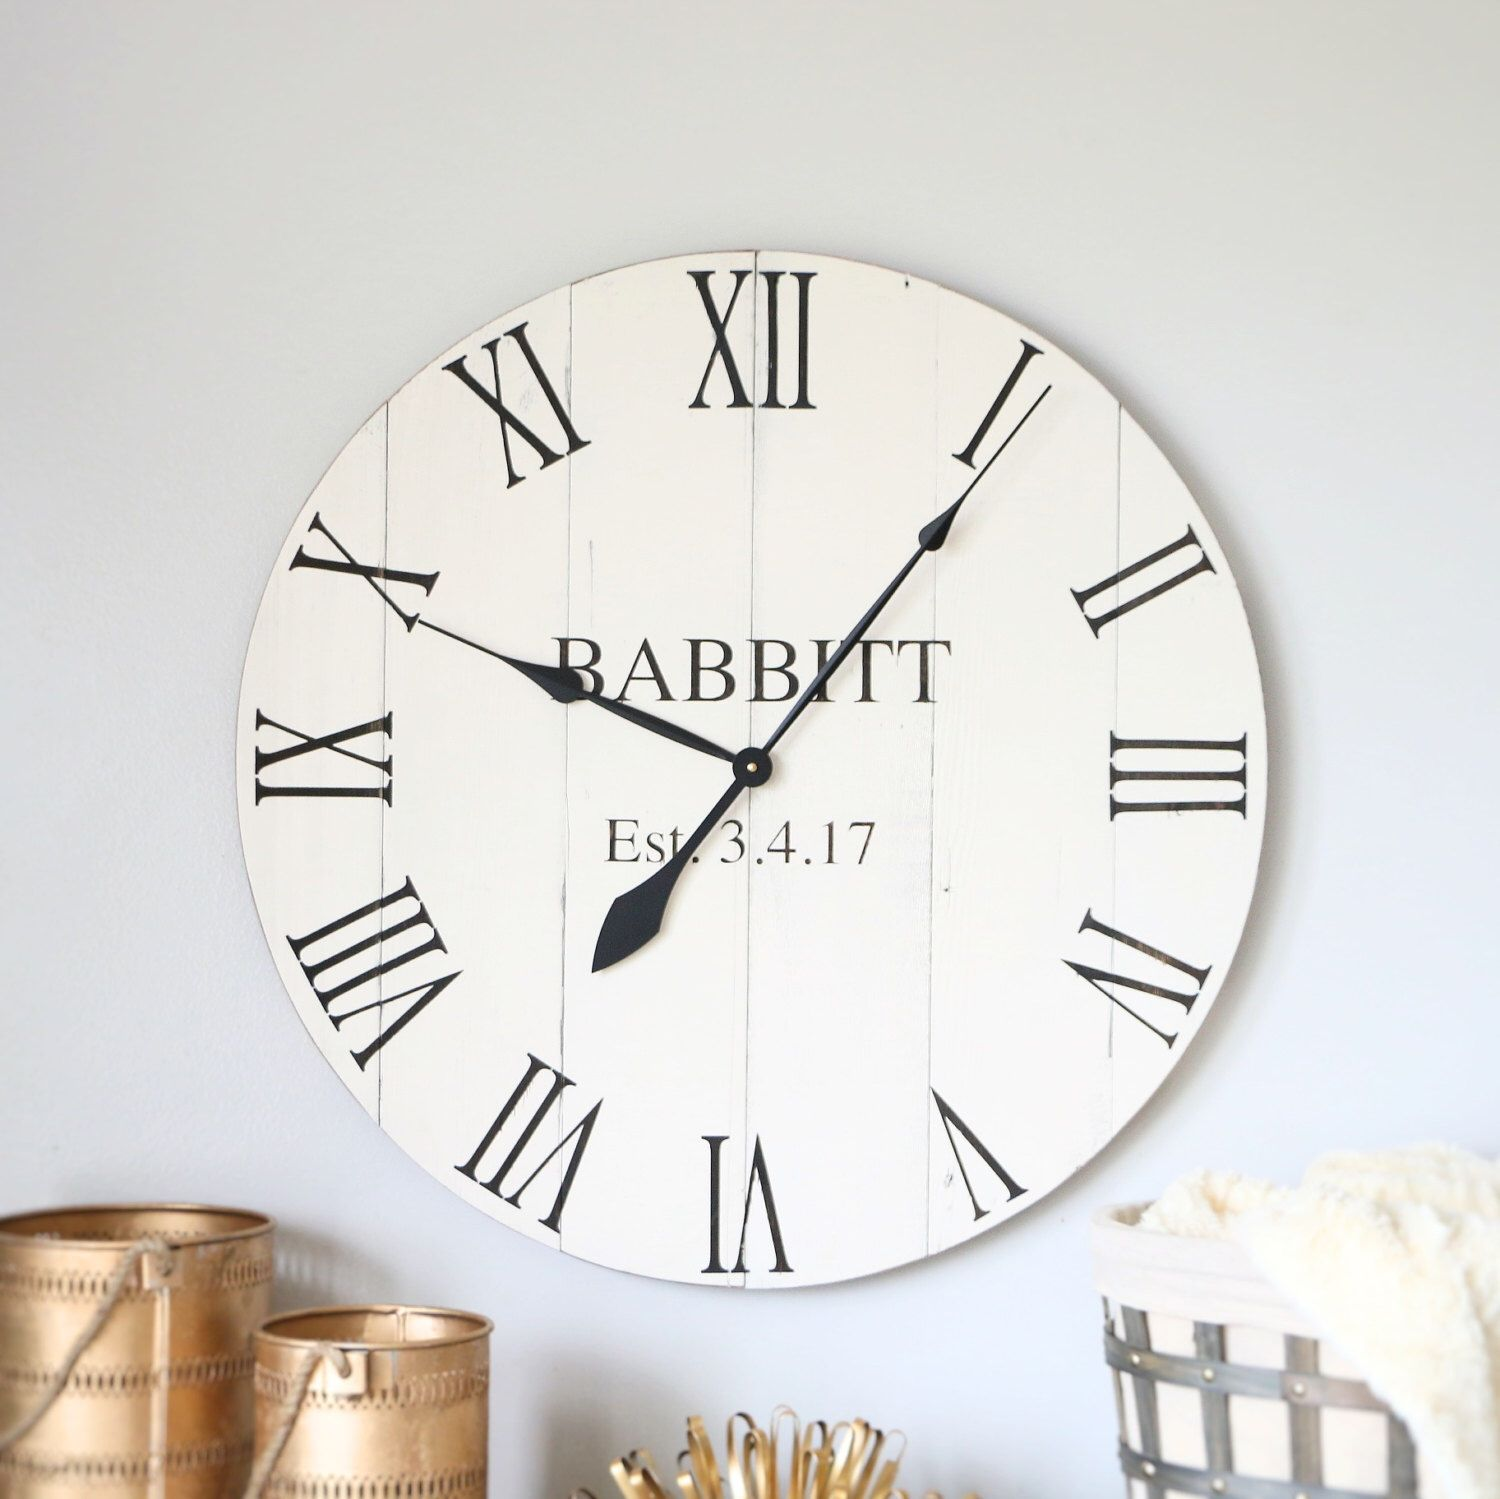 2530 in wall clock personalized gift wedding gift family gift 2530 in wall clock personalized gift wedding gift family gift amipublicfo Choice Image